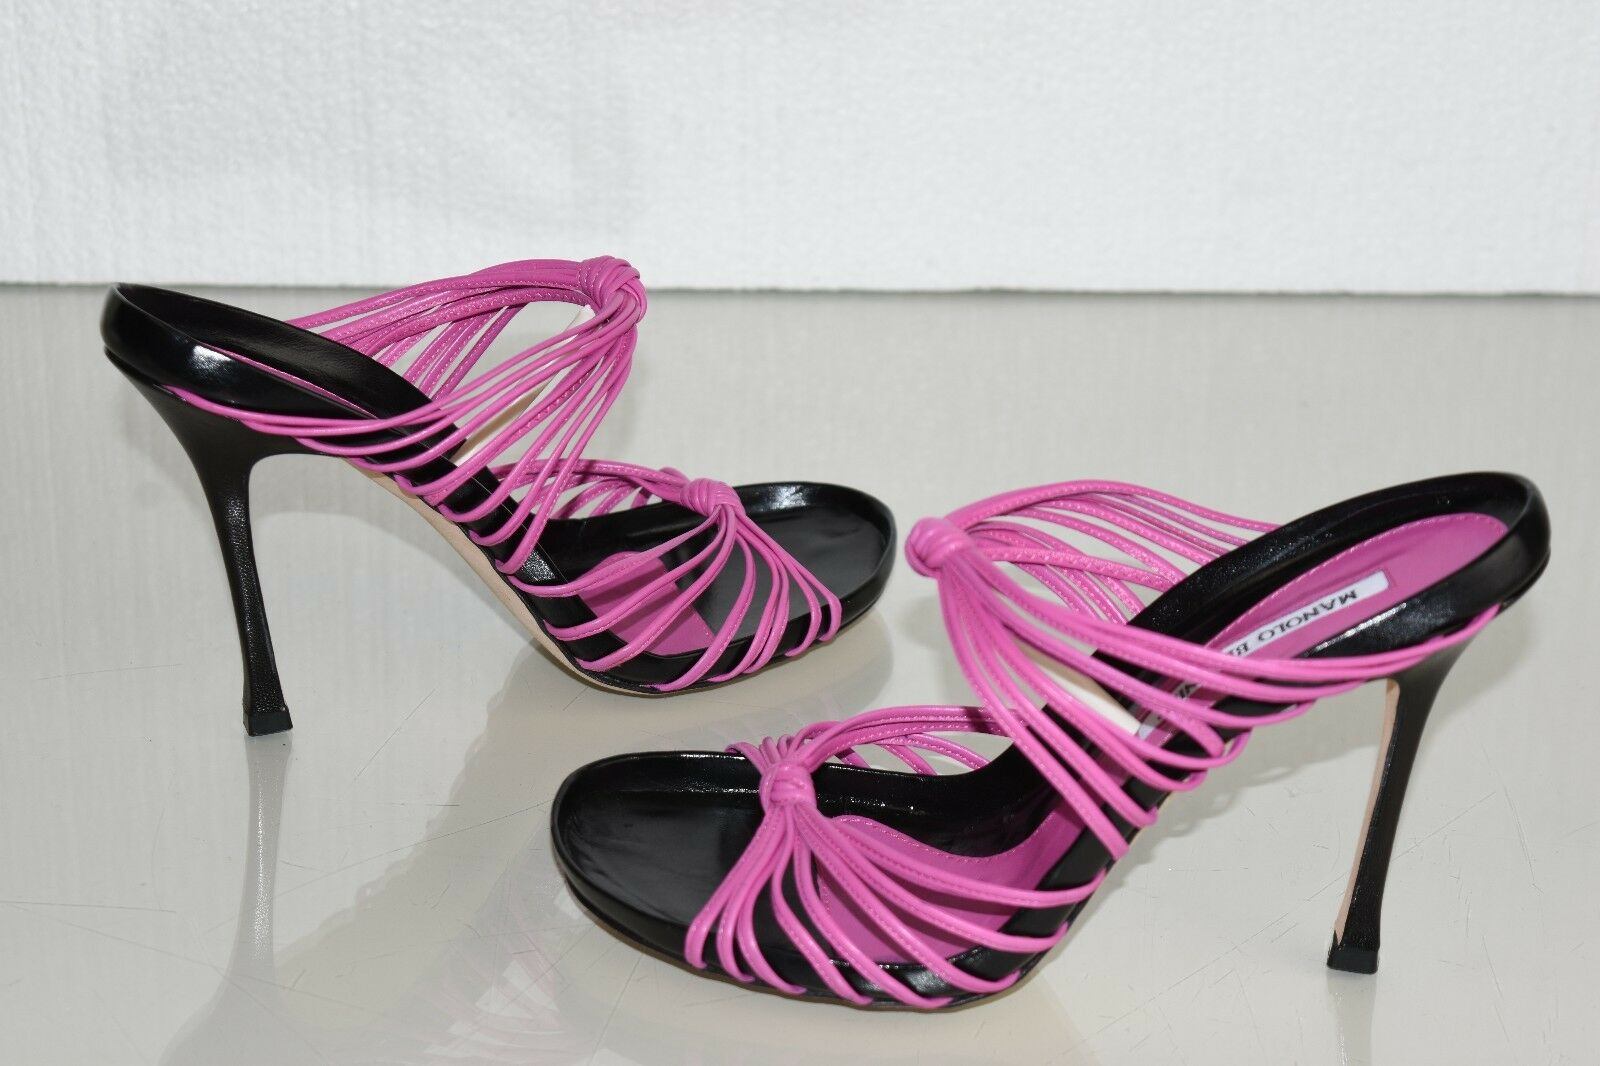 885 NEW MANOLO BLAHNIK Fuchsia Pink BLACK LEATHER Strappy SANDALS SHOES 39.5